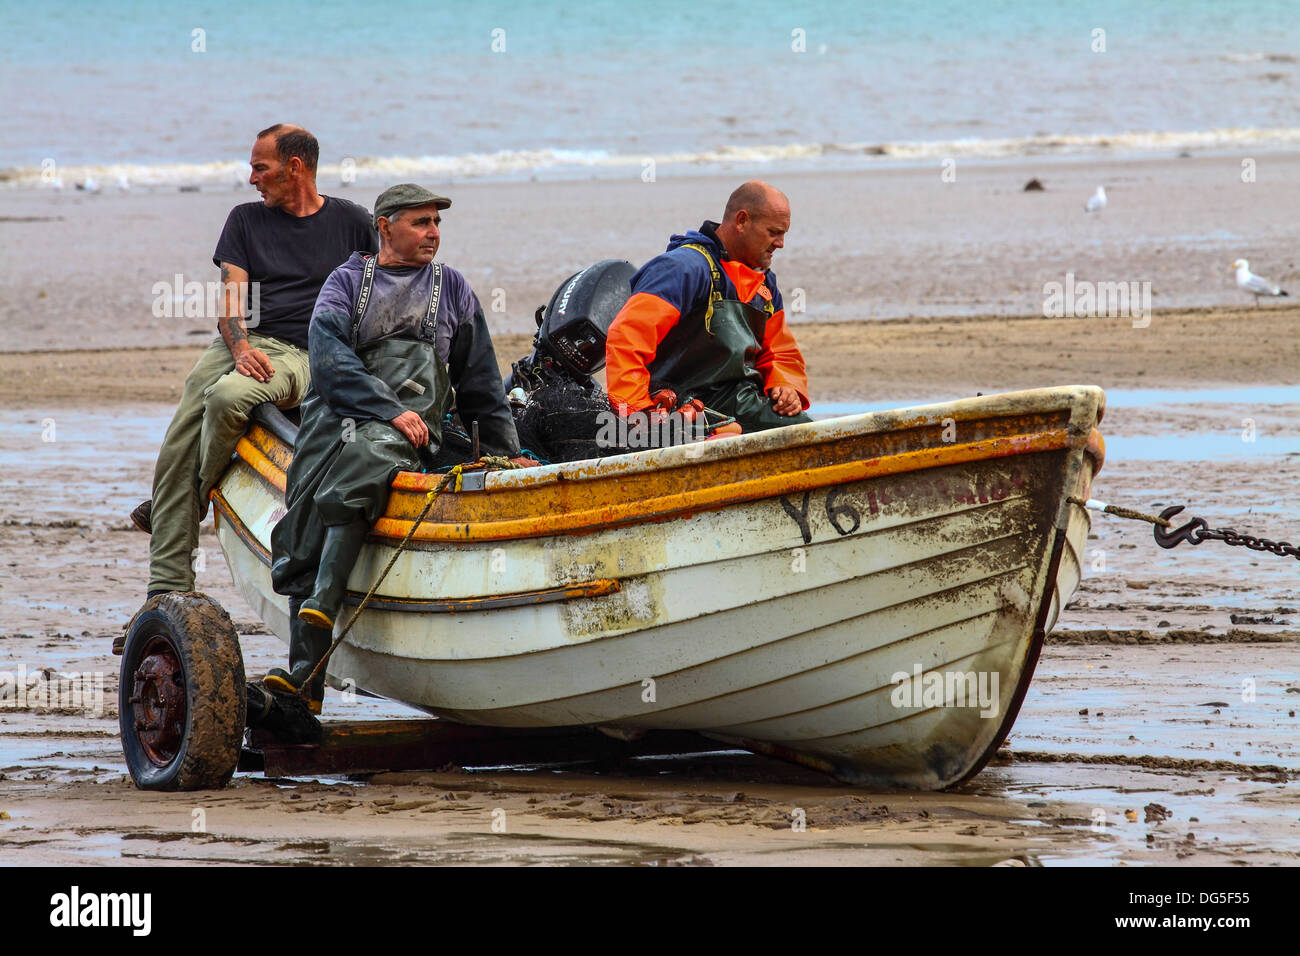 Filey fishing coble being towed back to the coble landing Stock Photo, Royalty Free Image ...